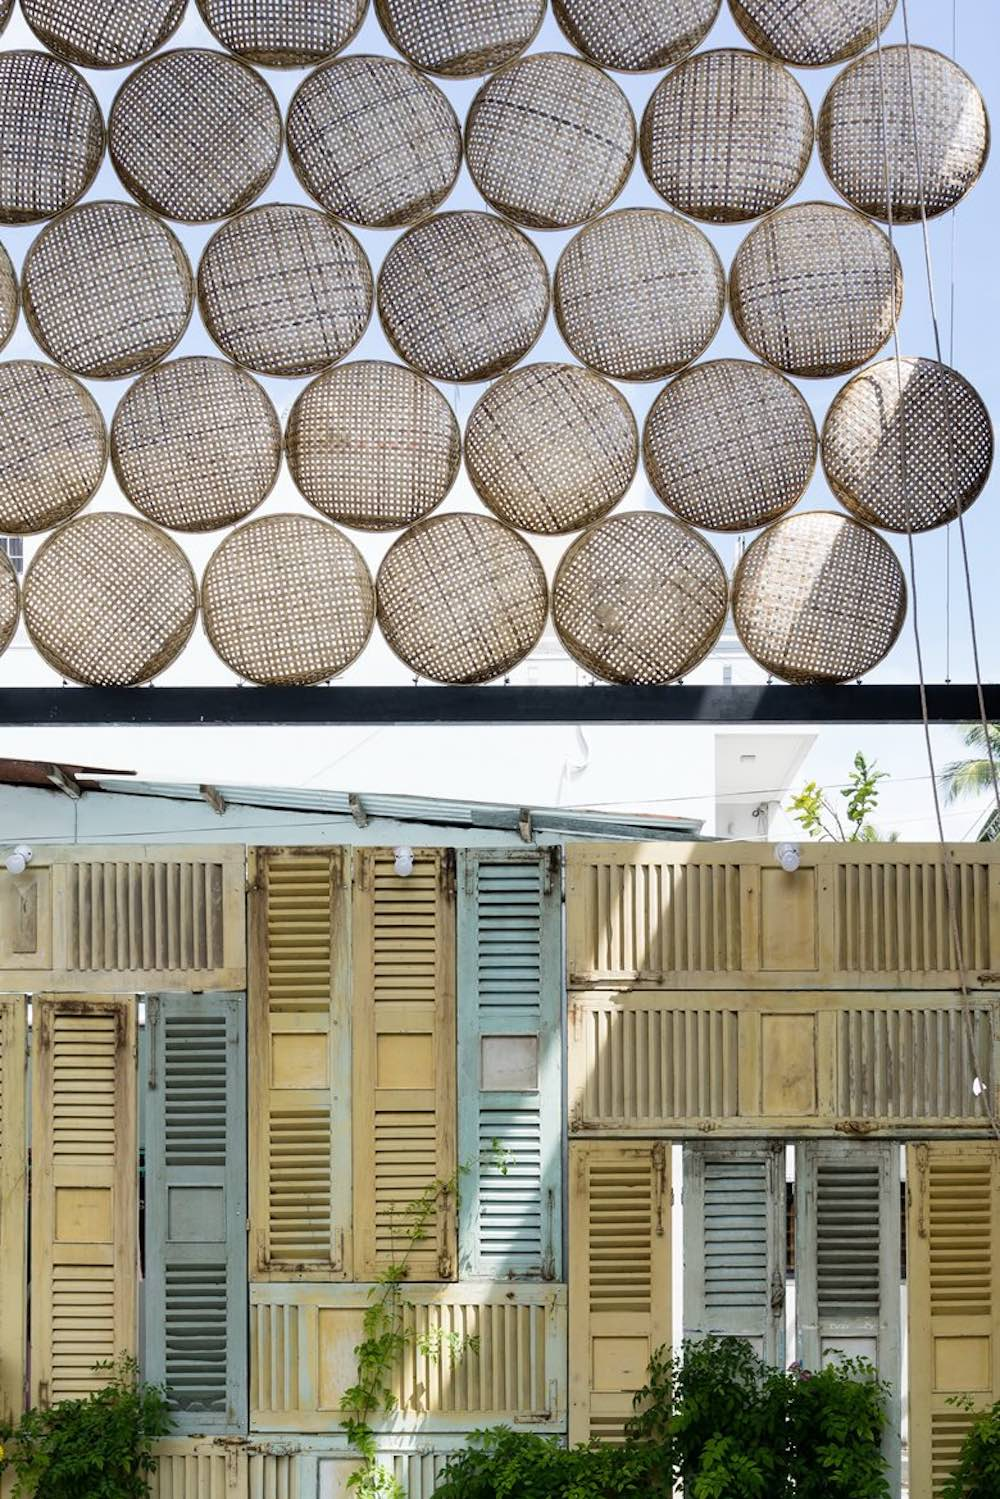 There are many interesting design elements worthy of mention, such as this wall made of lots of reclaimed shutters